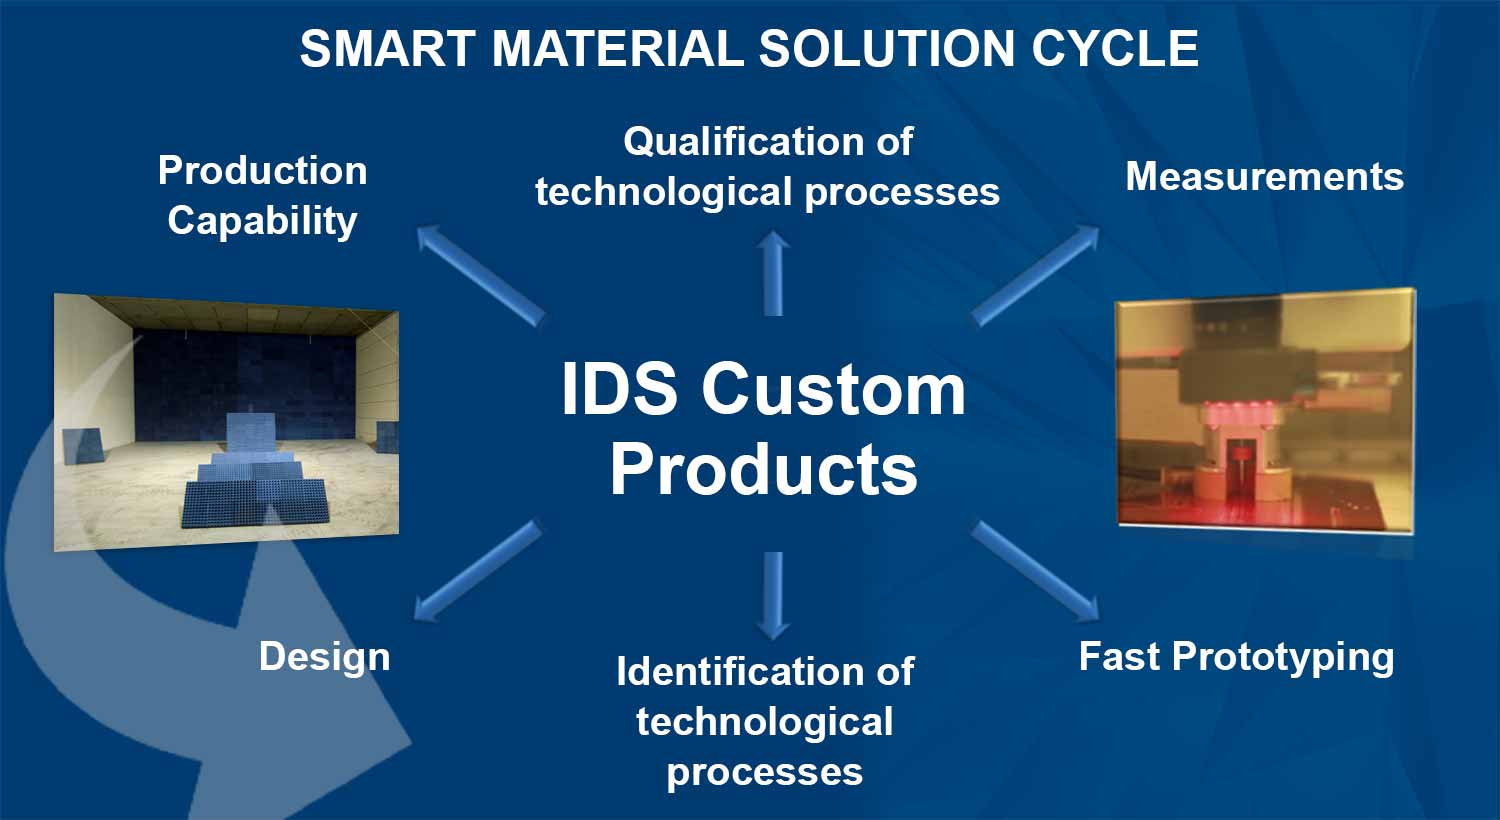 Smart Material Solution Cycle